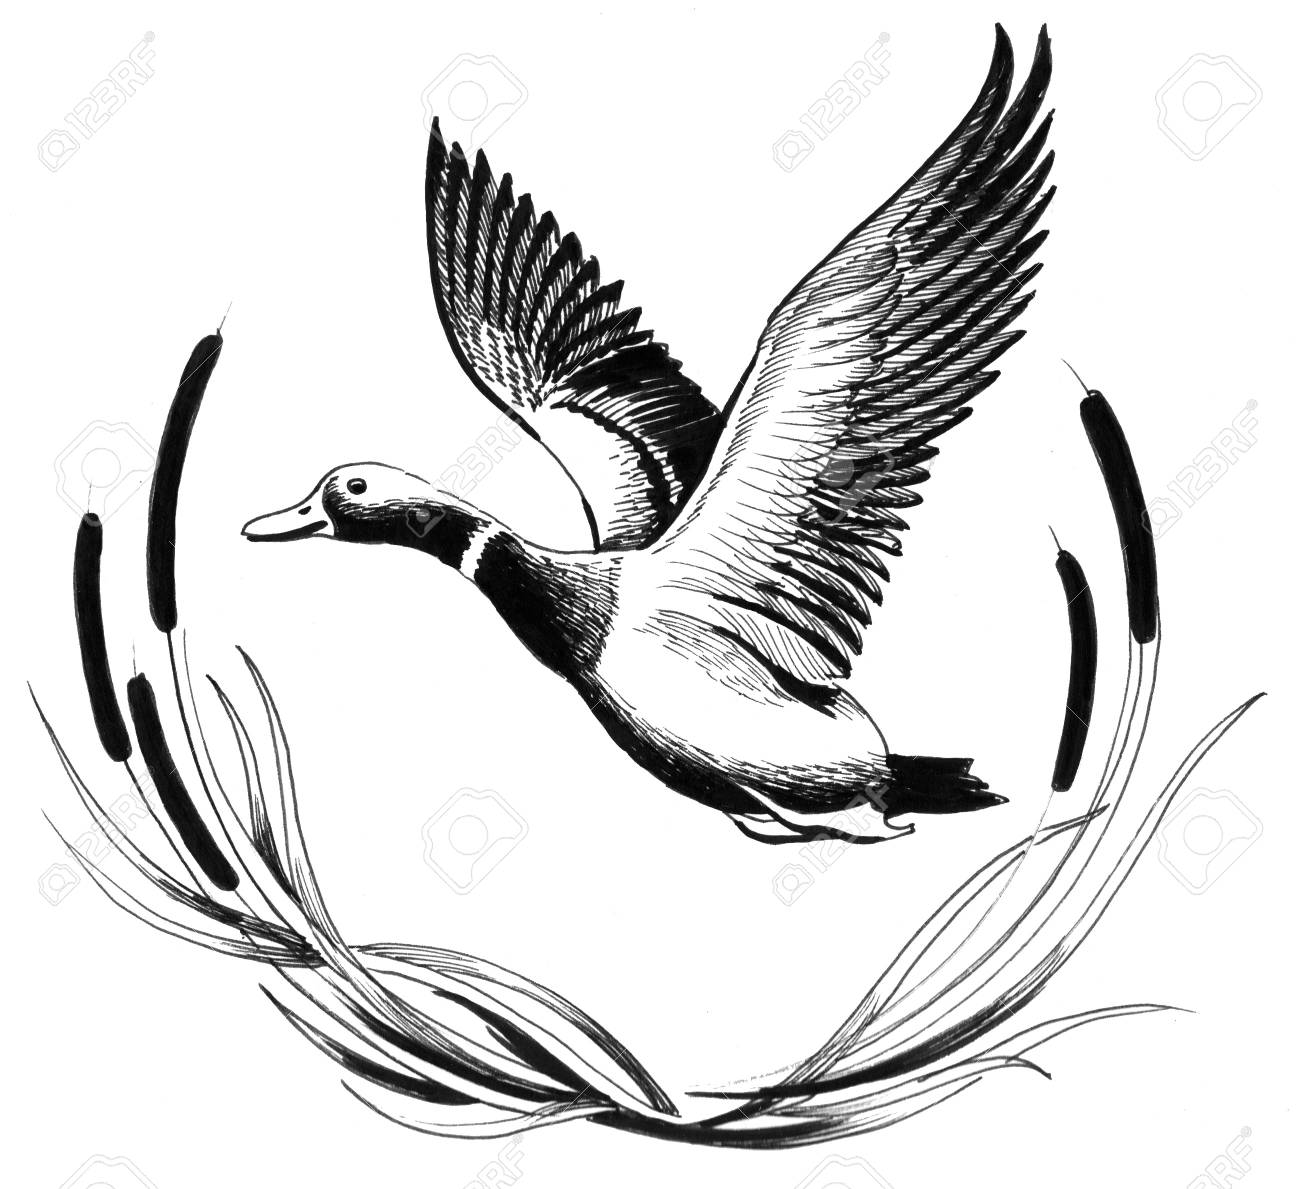 1300x1189 Flying Goose Stock Photo, Picture And Royalty Free Image. Image